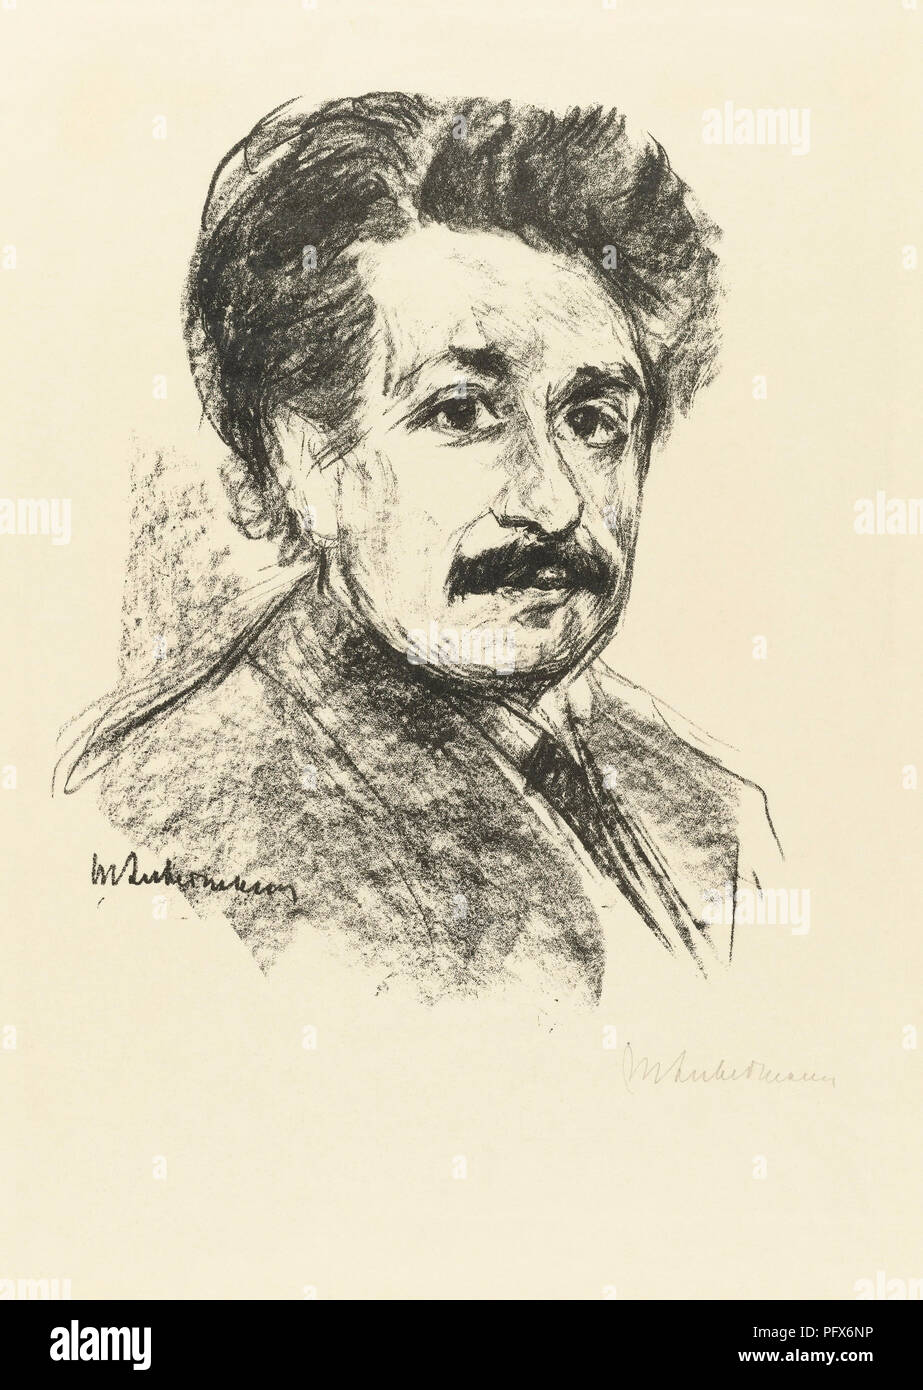 Portrait of Albert Einstein, after a work by Max Liebermann.  Albert Einstein, German-born physicist, 1879-1955. Max Liebermann, German artist, 1847-1935. - Stock Image